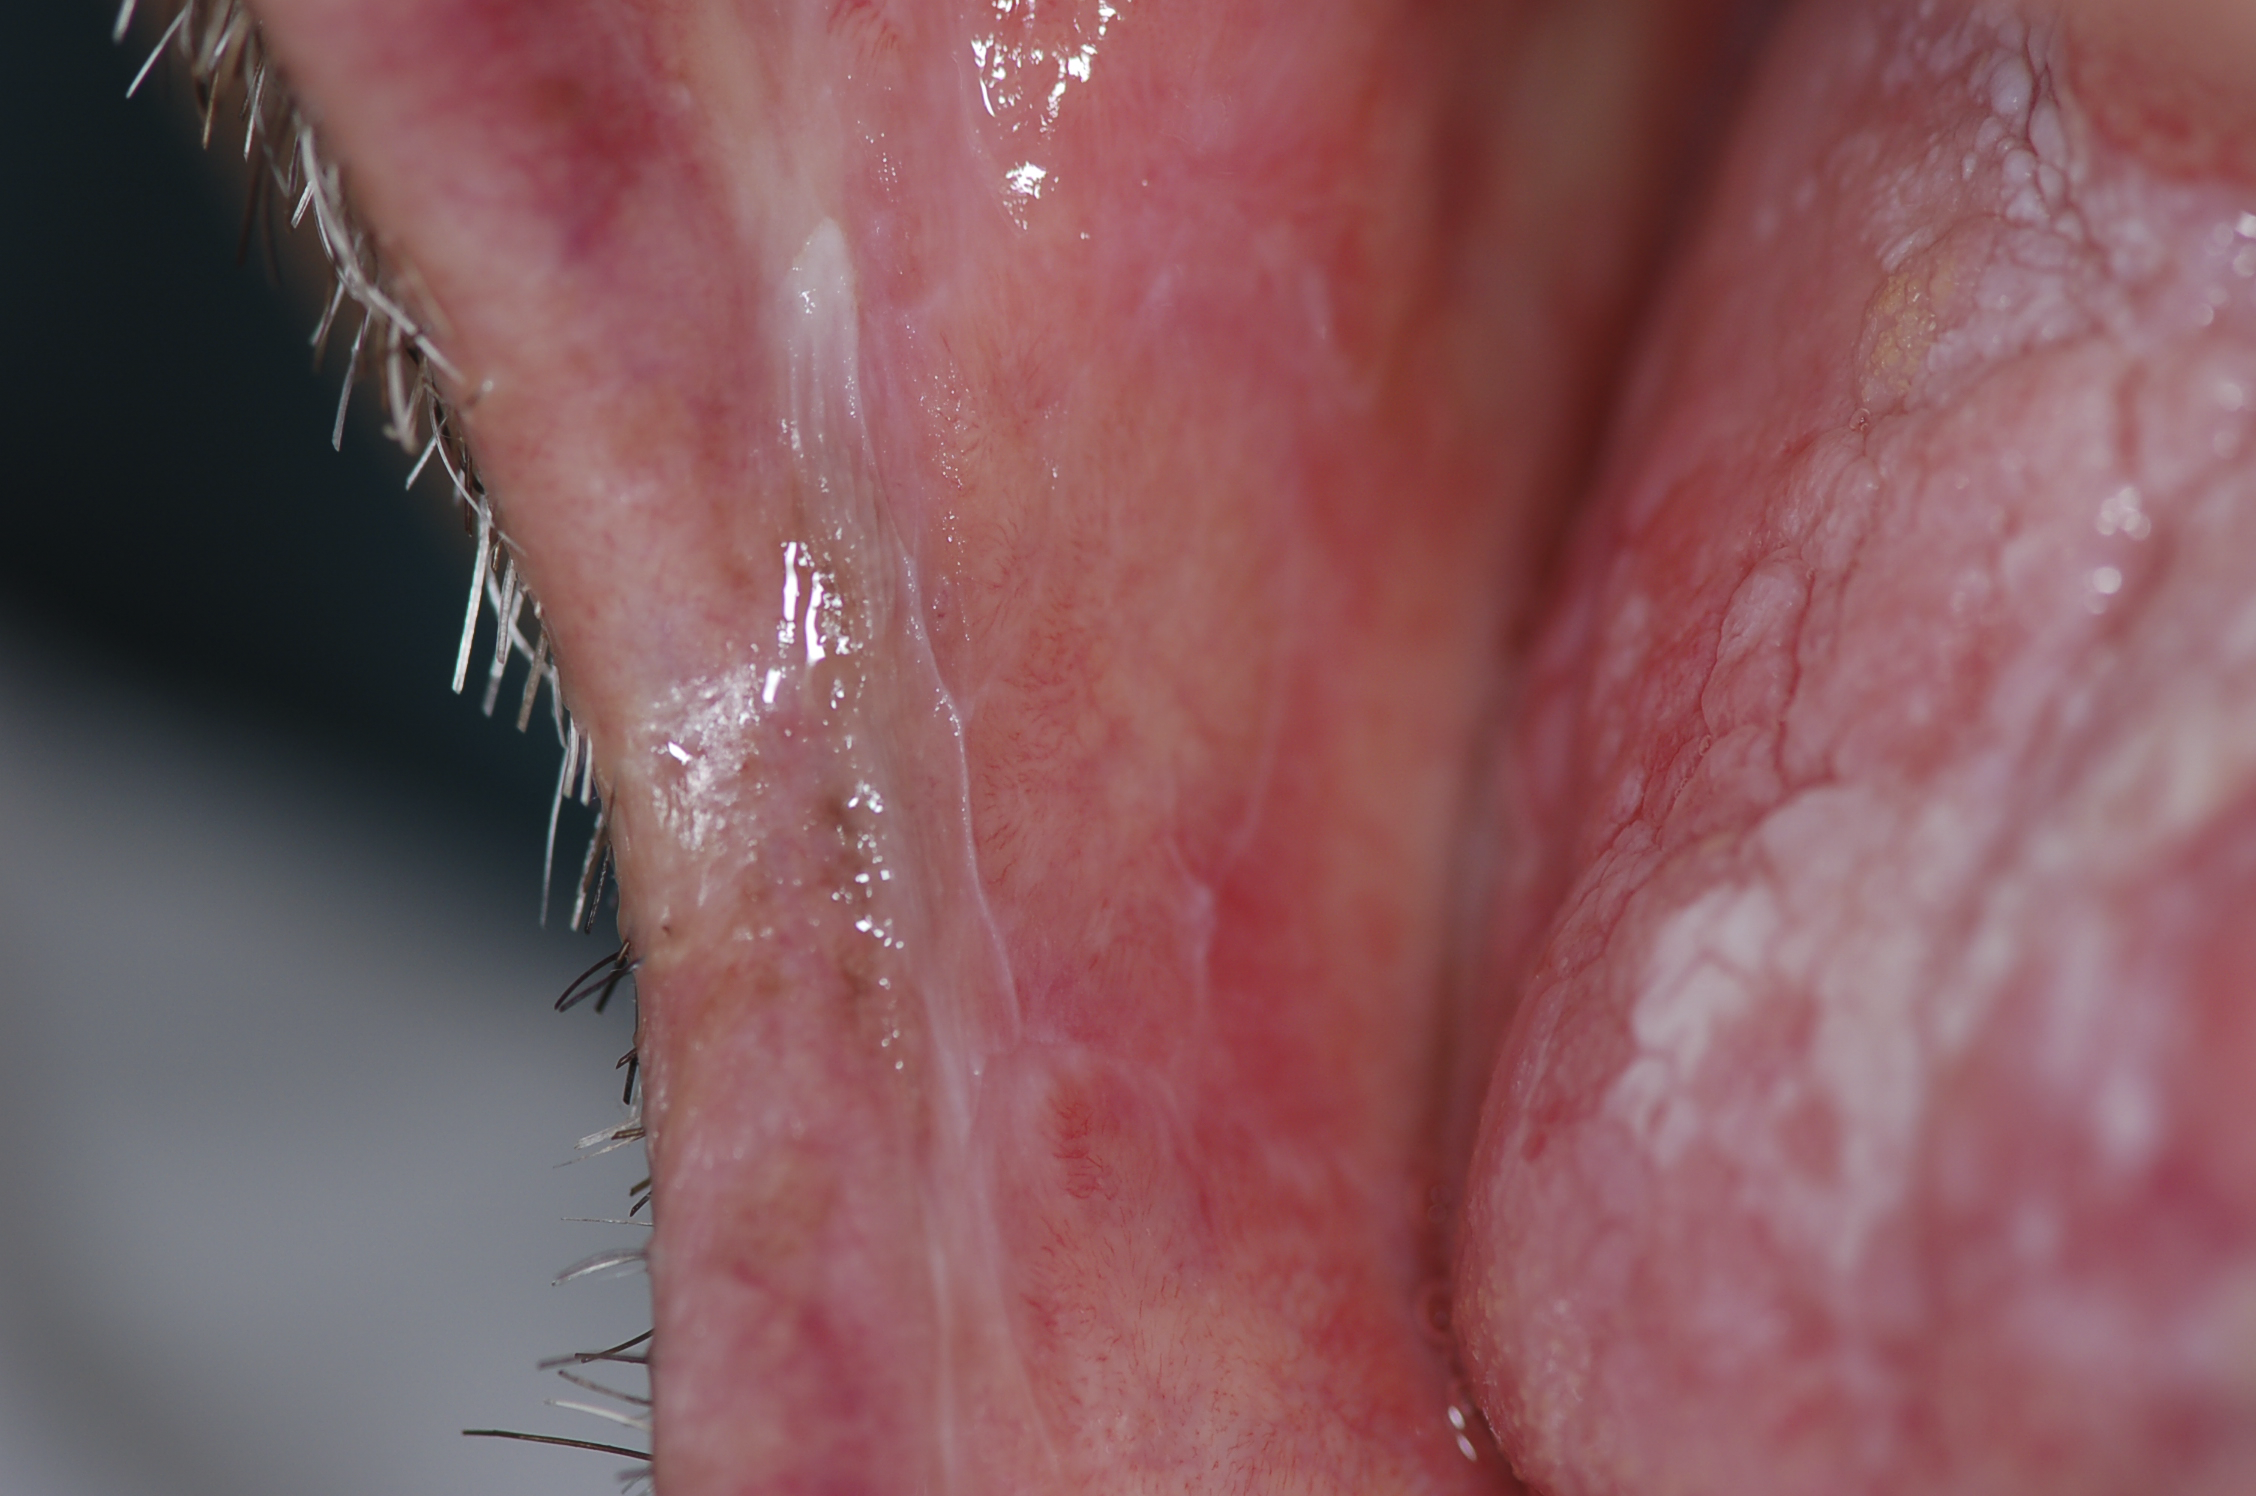 Interlacing White Striae on the Right Buccal Mucosa, Consistent with the Diagnosis of Oral Lichen Planus